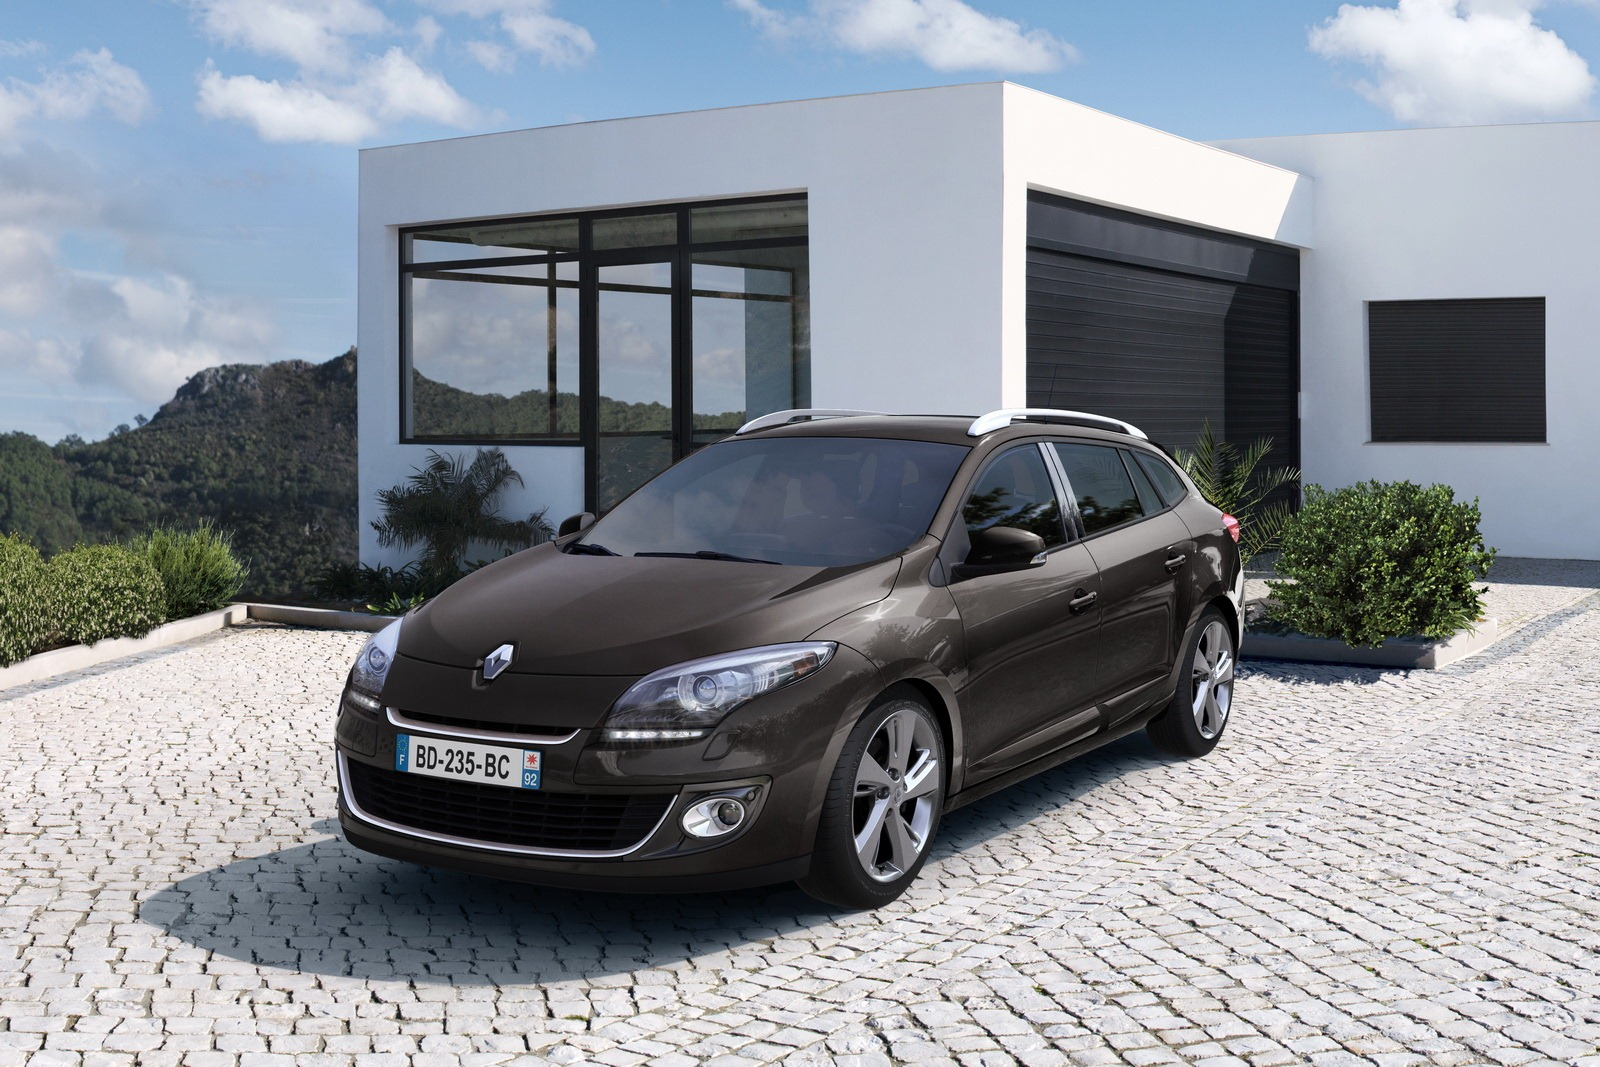 My Perfect Renault Megane 3dtuning Probably The Best Car Configurator